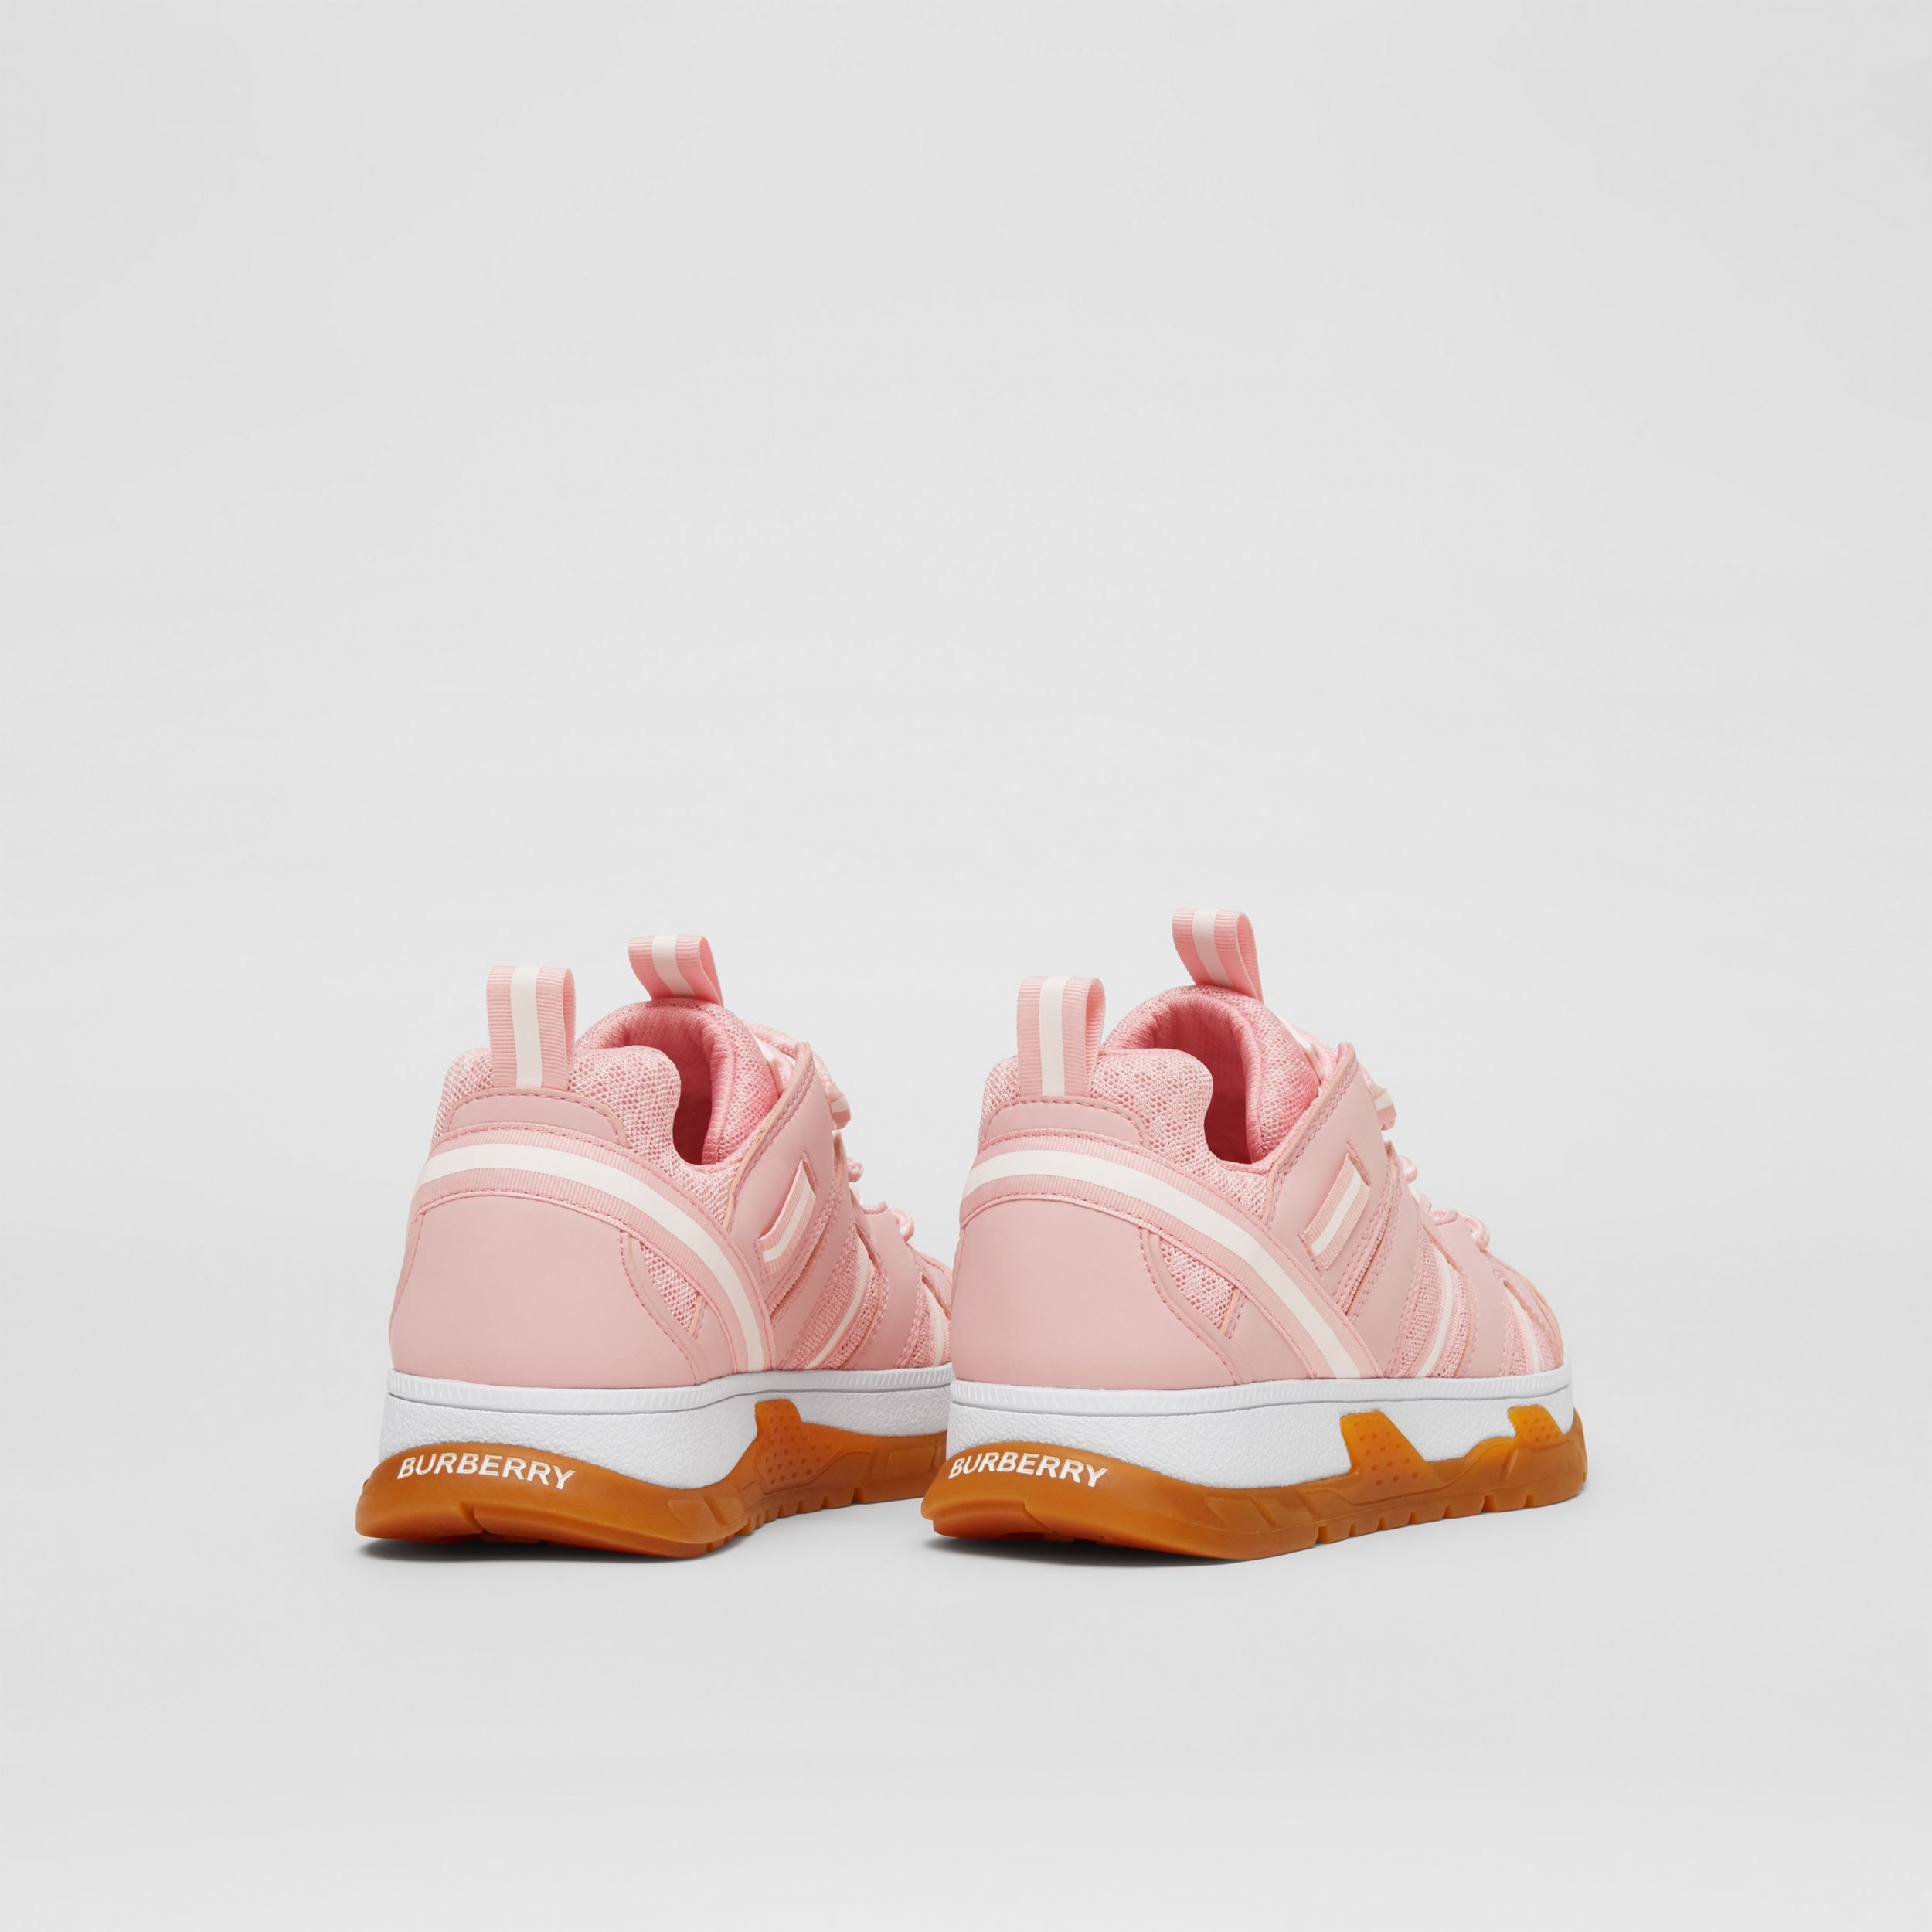 Nylon and Mesh Union Sneakers in Candy Pink - Children | Burberry Canada - 3